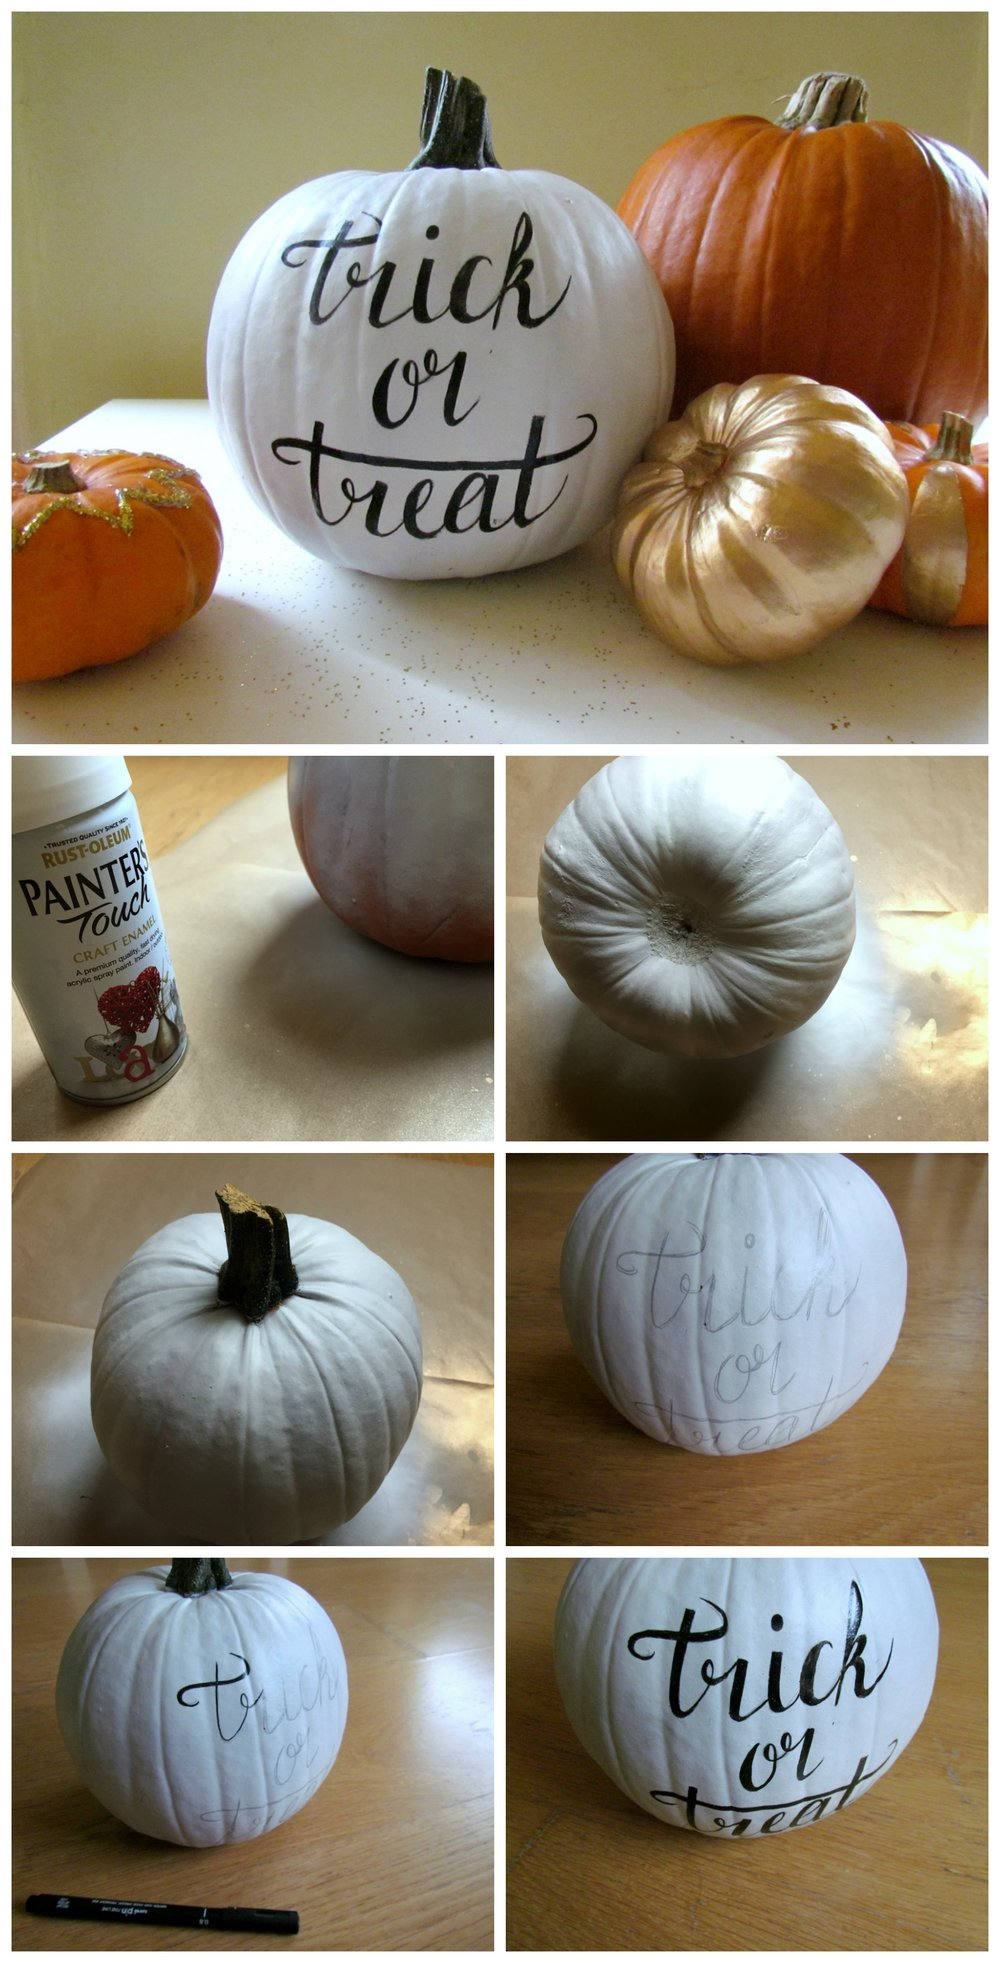 DIY Halloween Hand-Lettered Pumpkin by Isoscella